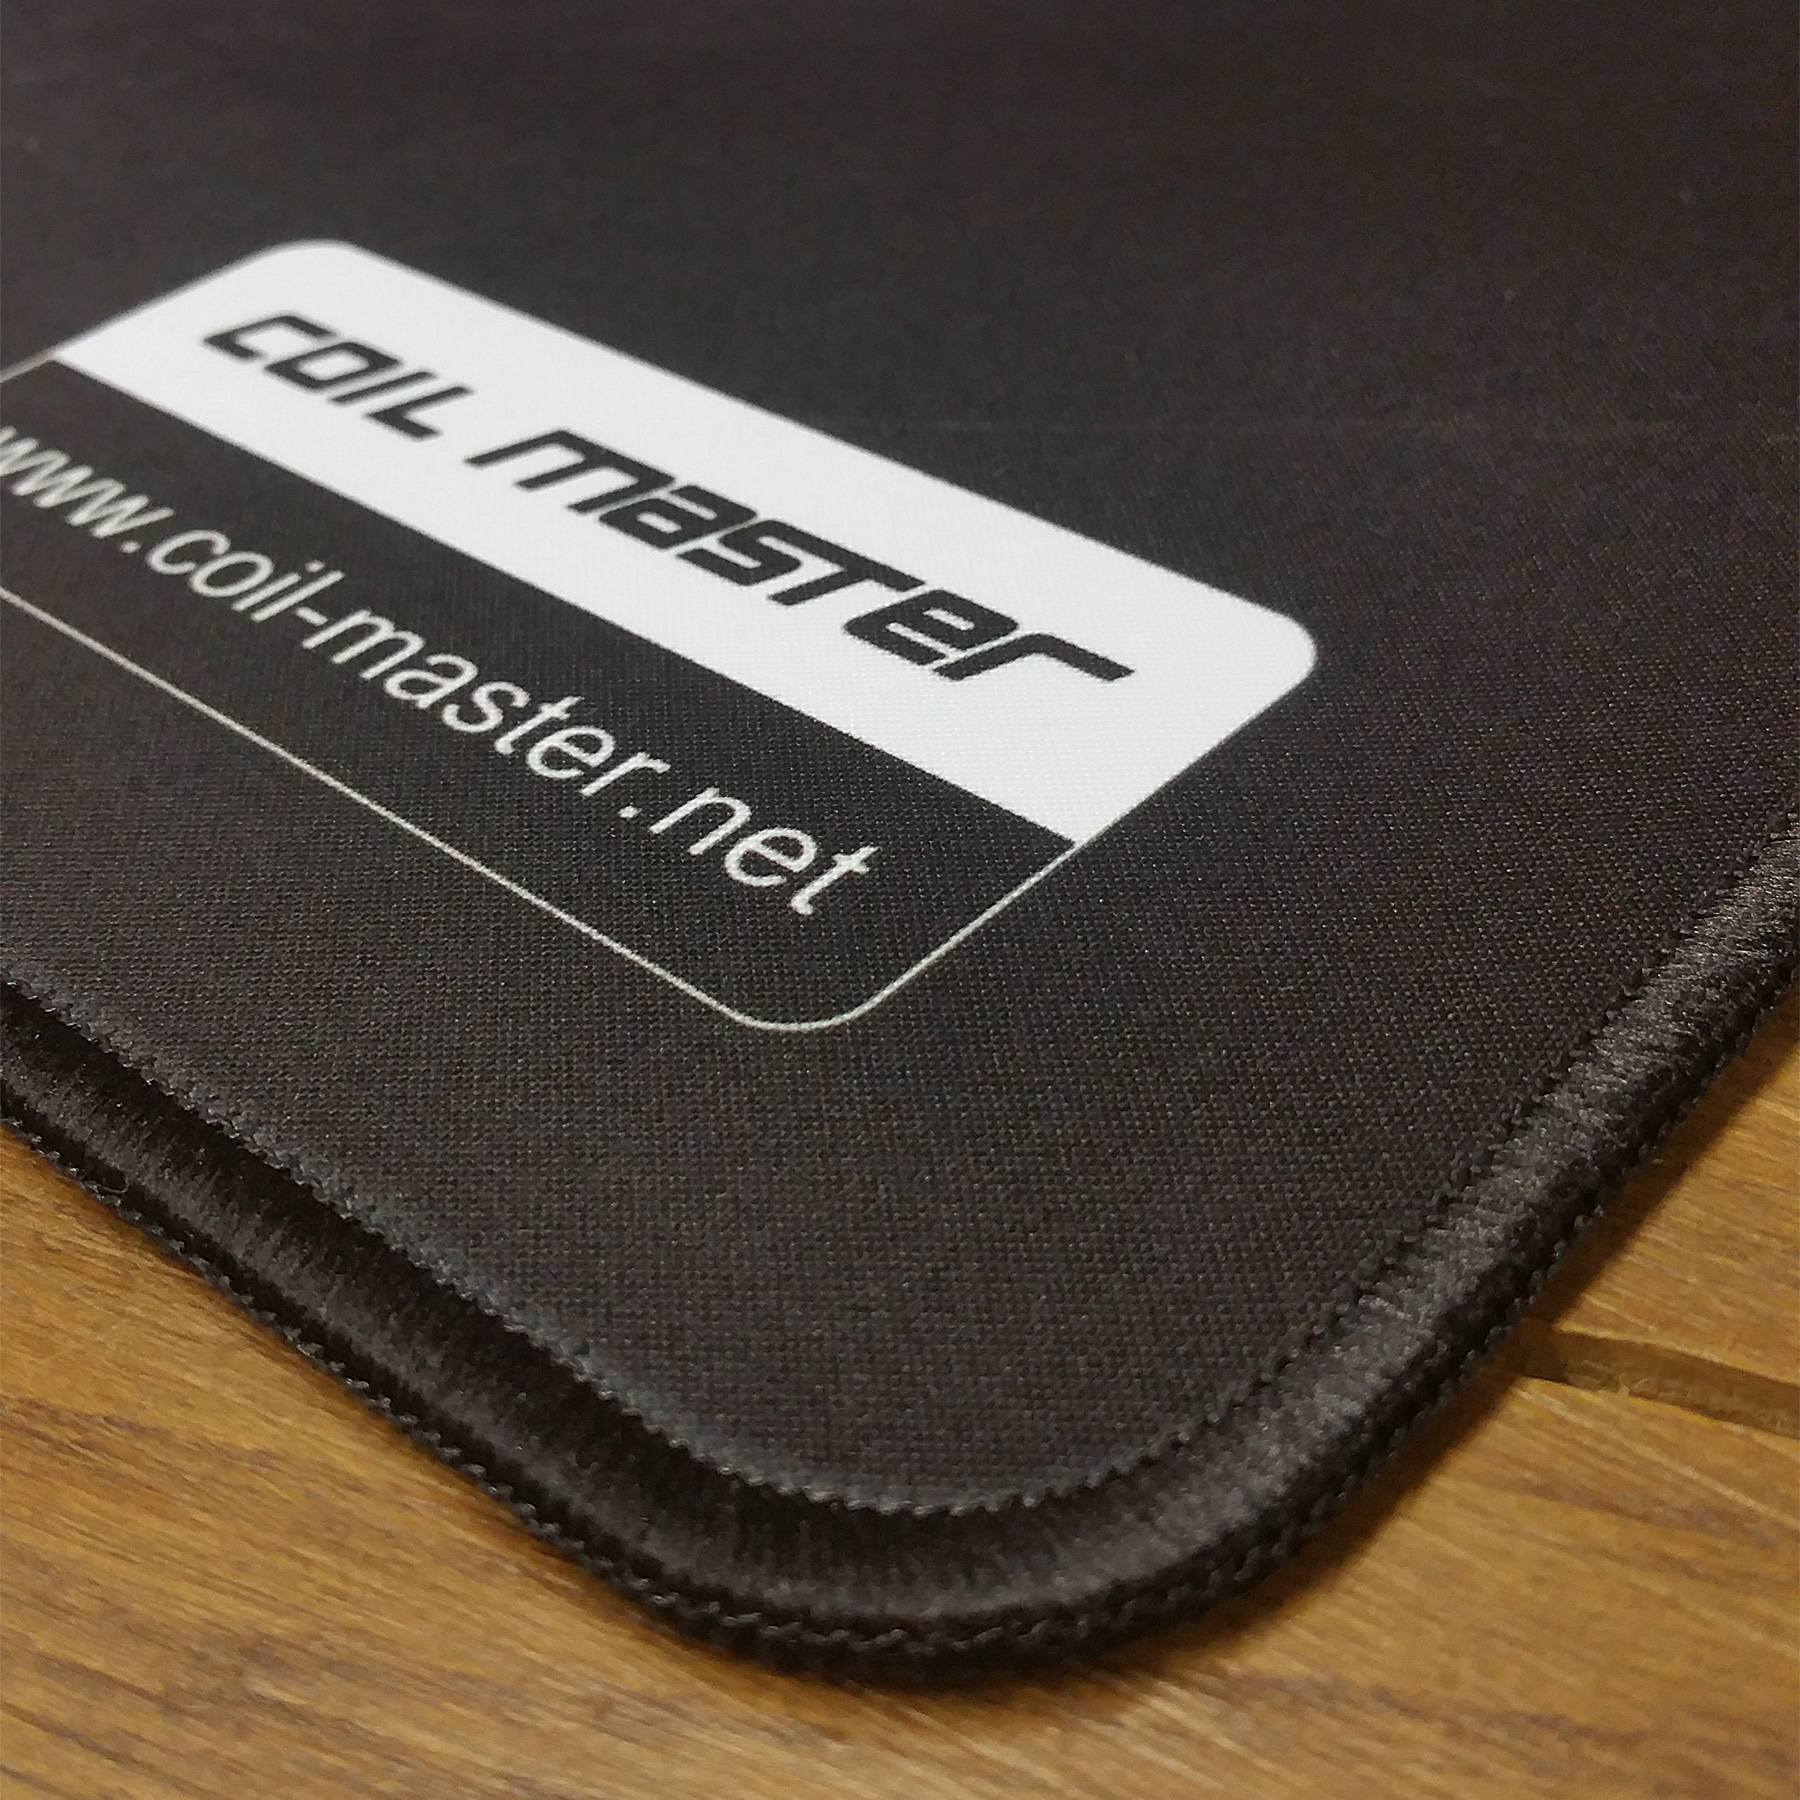 Buy The Coil Master Giant Building Mat At Redjuice Co Uk